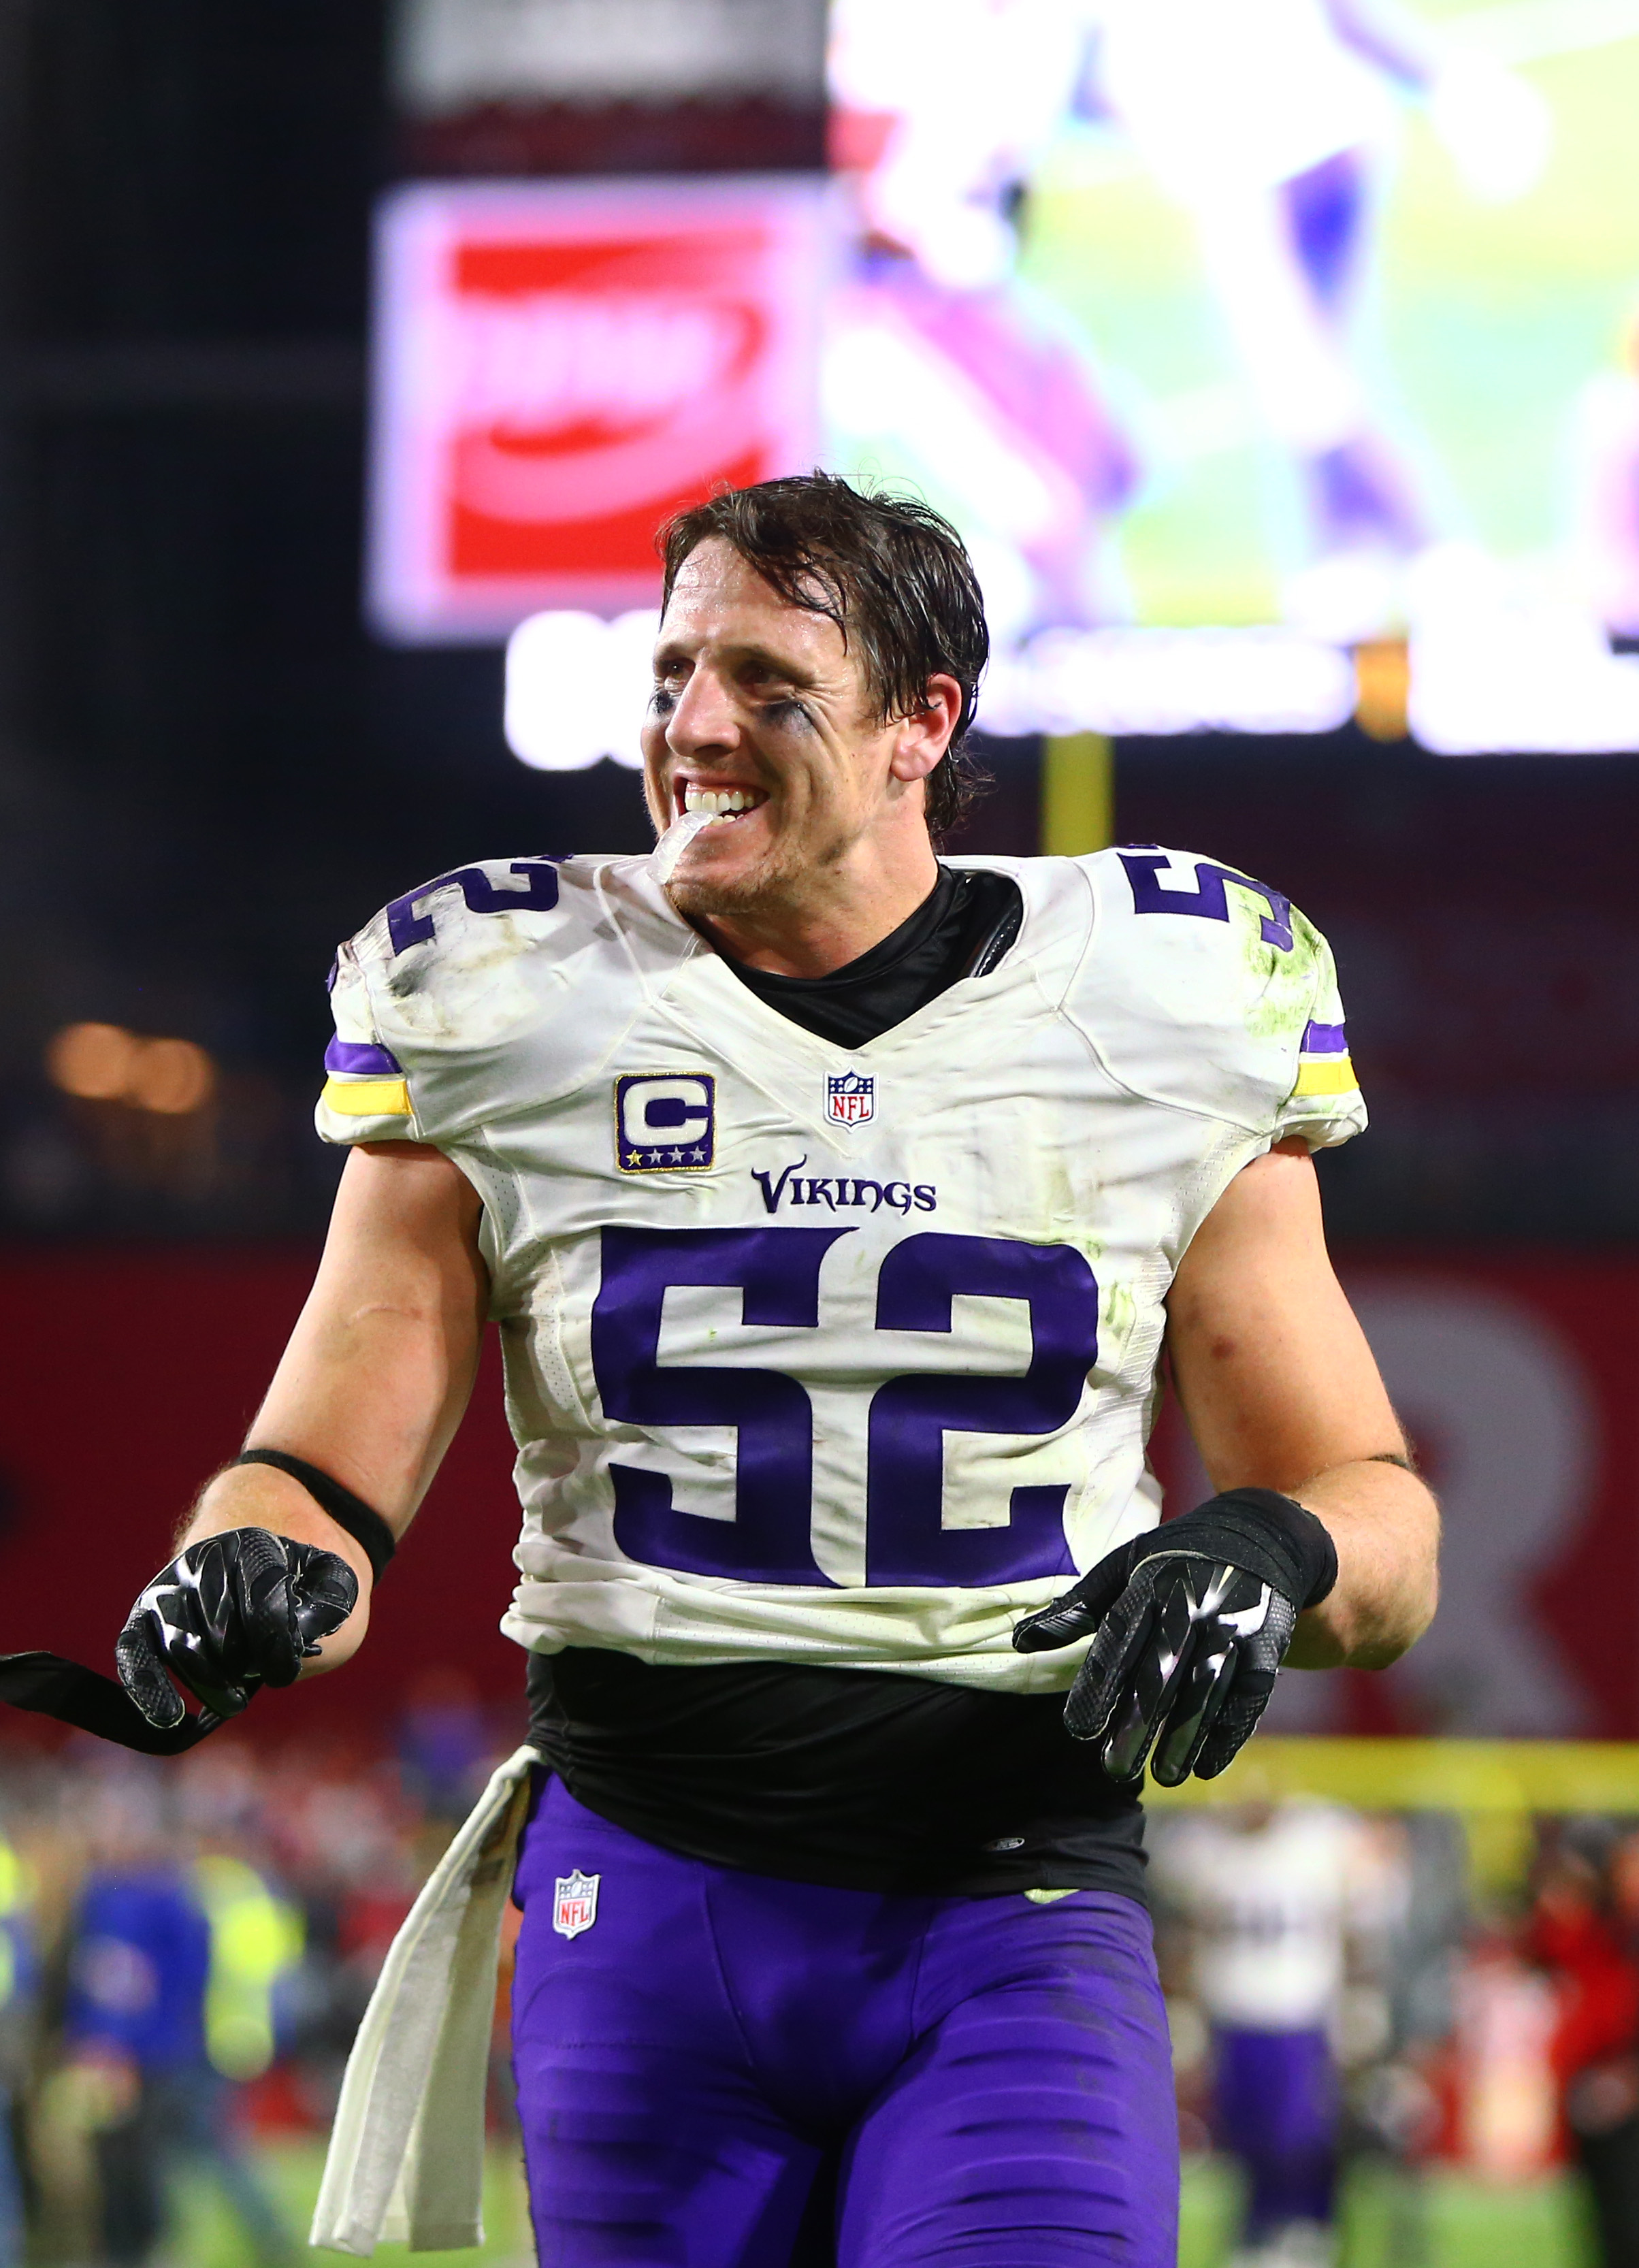 wholesale dealer c2dd6 09788 Vikings' Chad Greenway Expects To Play In 2016